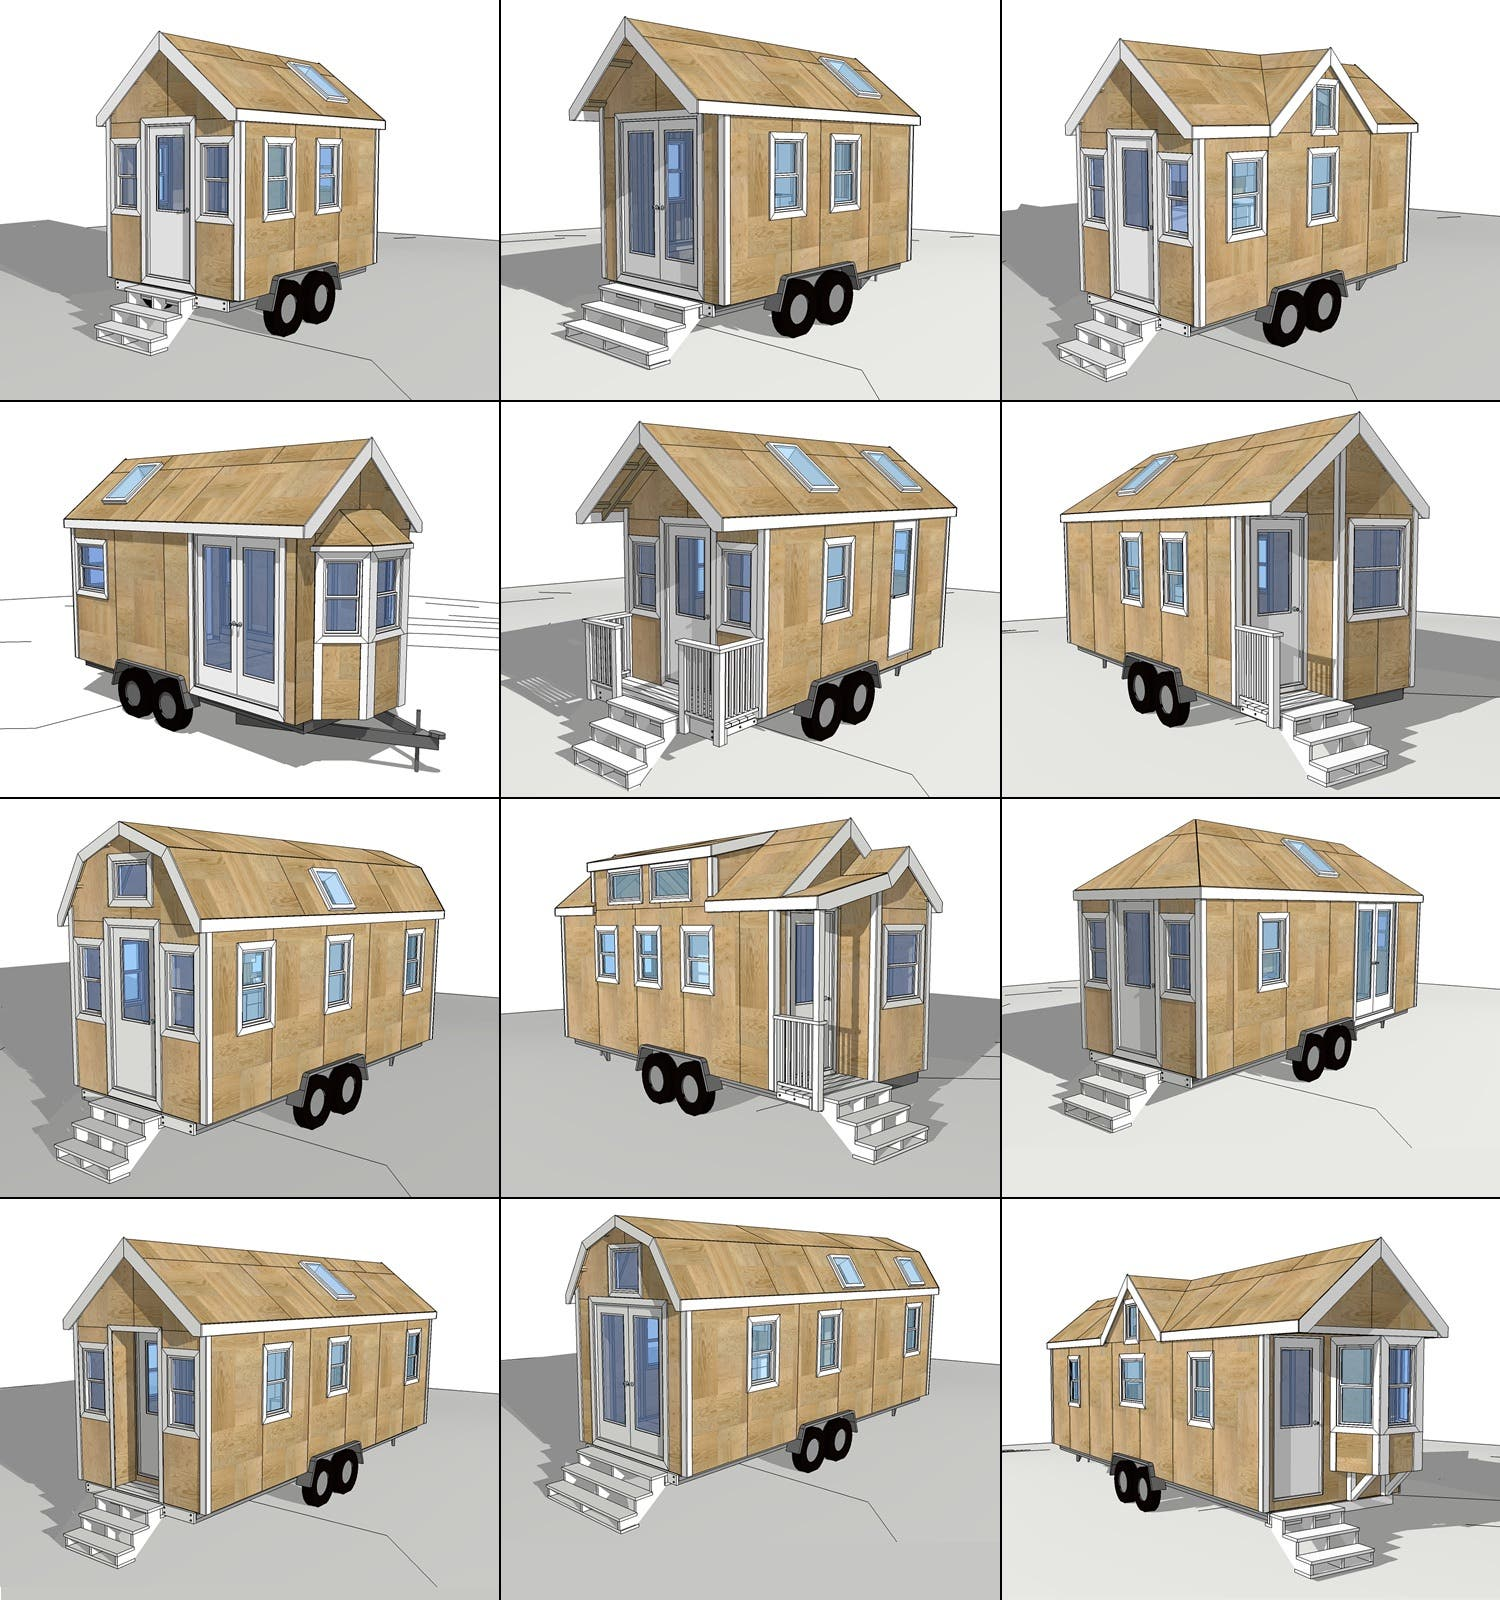 12 plan bundle 5 days 79 for Tiny home blueprints free